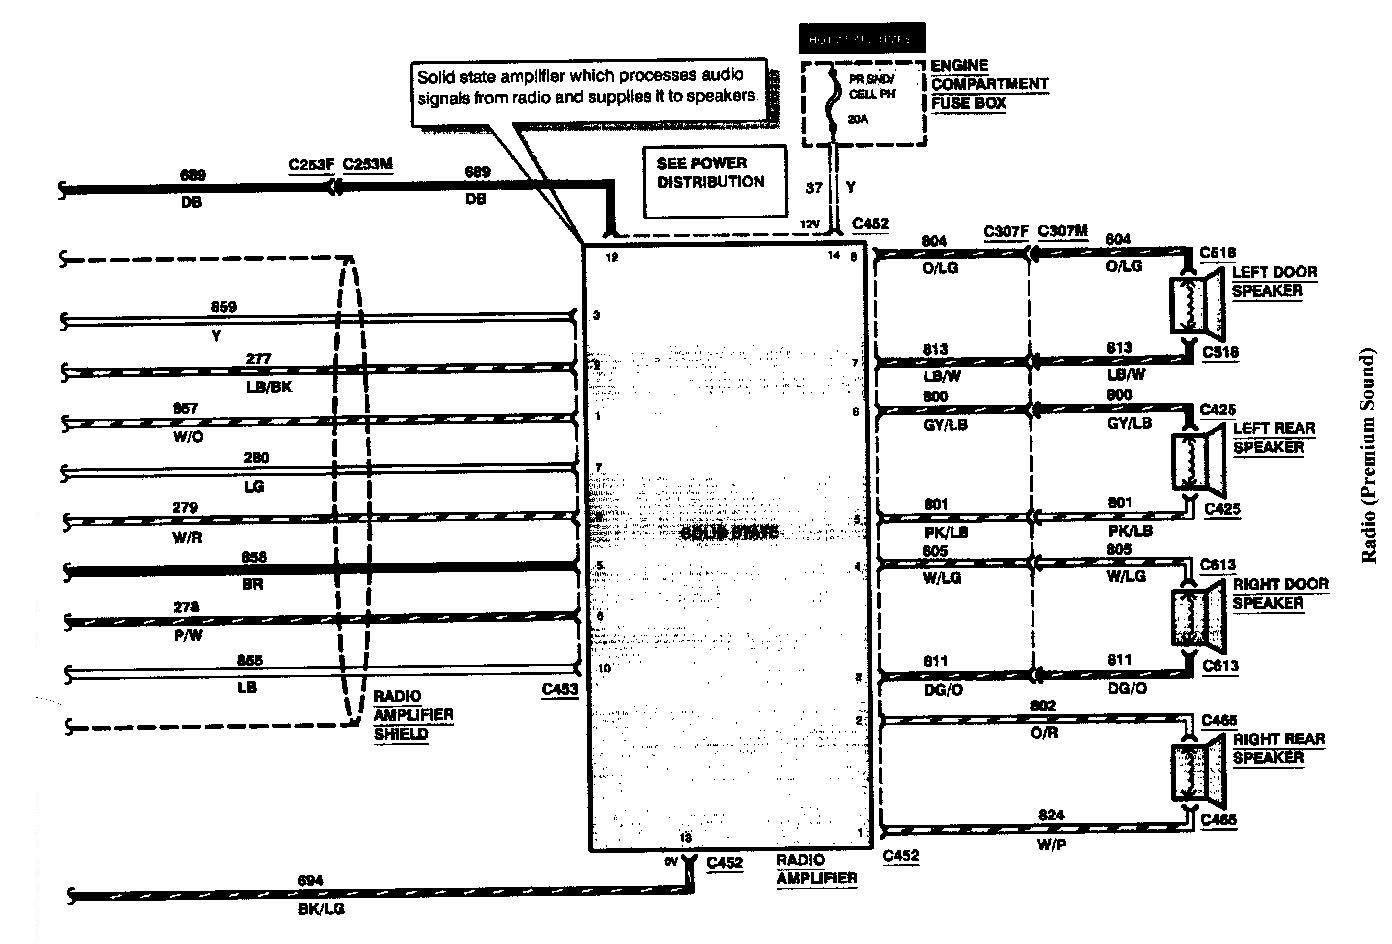 95Mark8 Premium Sound Wiring2 95 mark 8 jbl wiring diagram needed lincolns online message forum 1995 lincoln town car radio wiring diagram at suagrazia.org